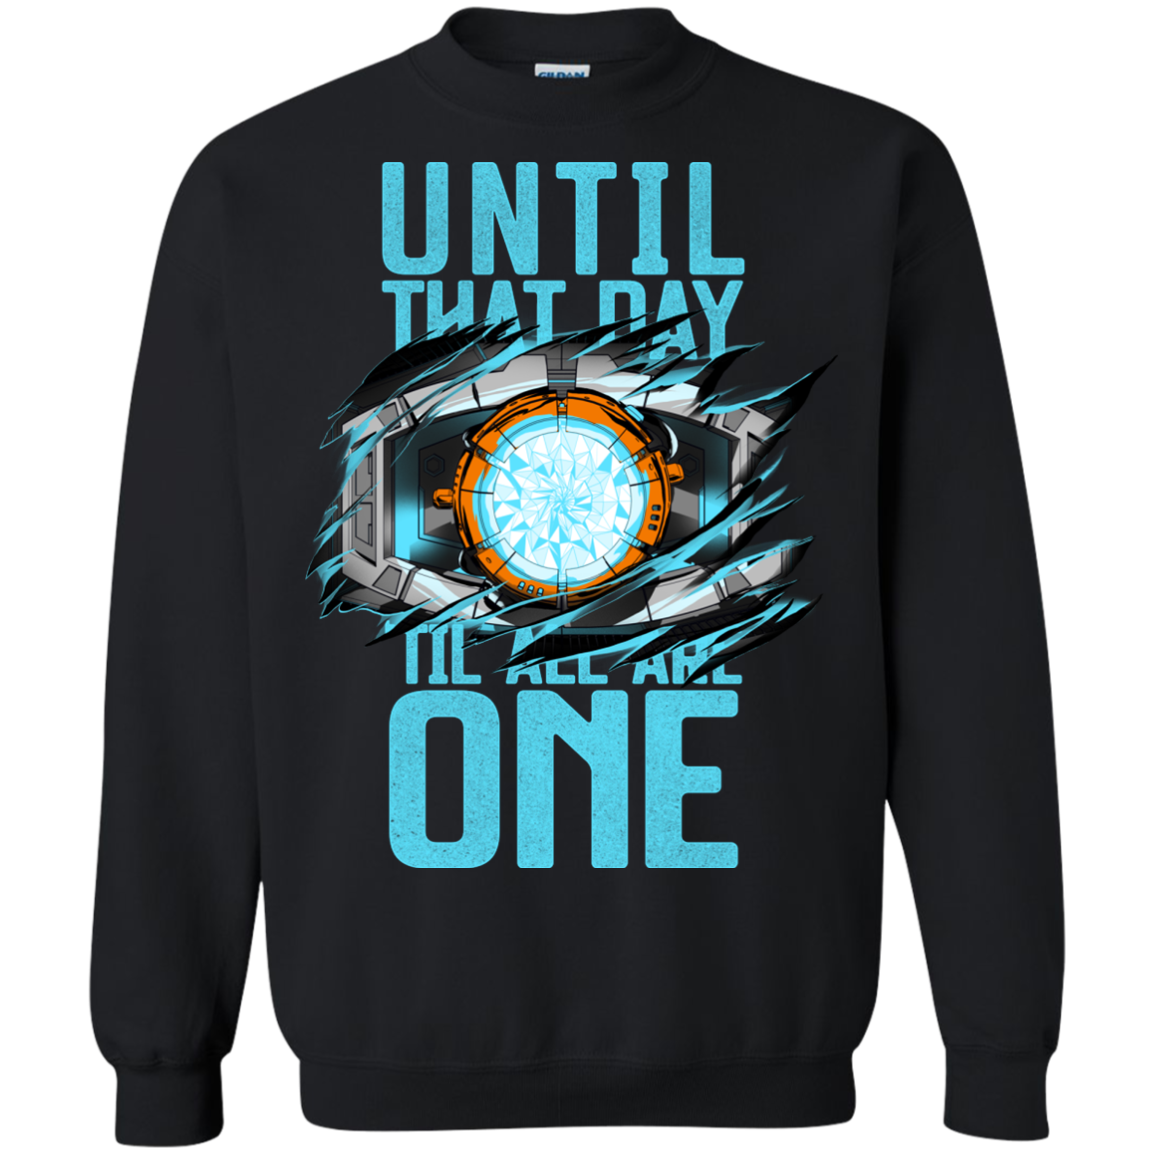 'Til all are One Sweatshirt T-Shirt & Hoodie - The Sun Cat